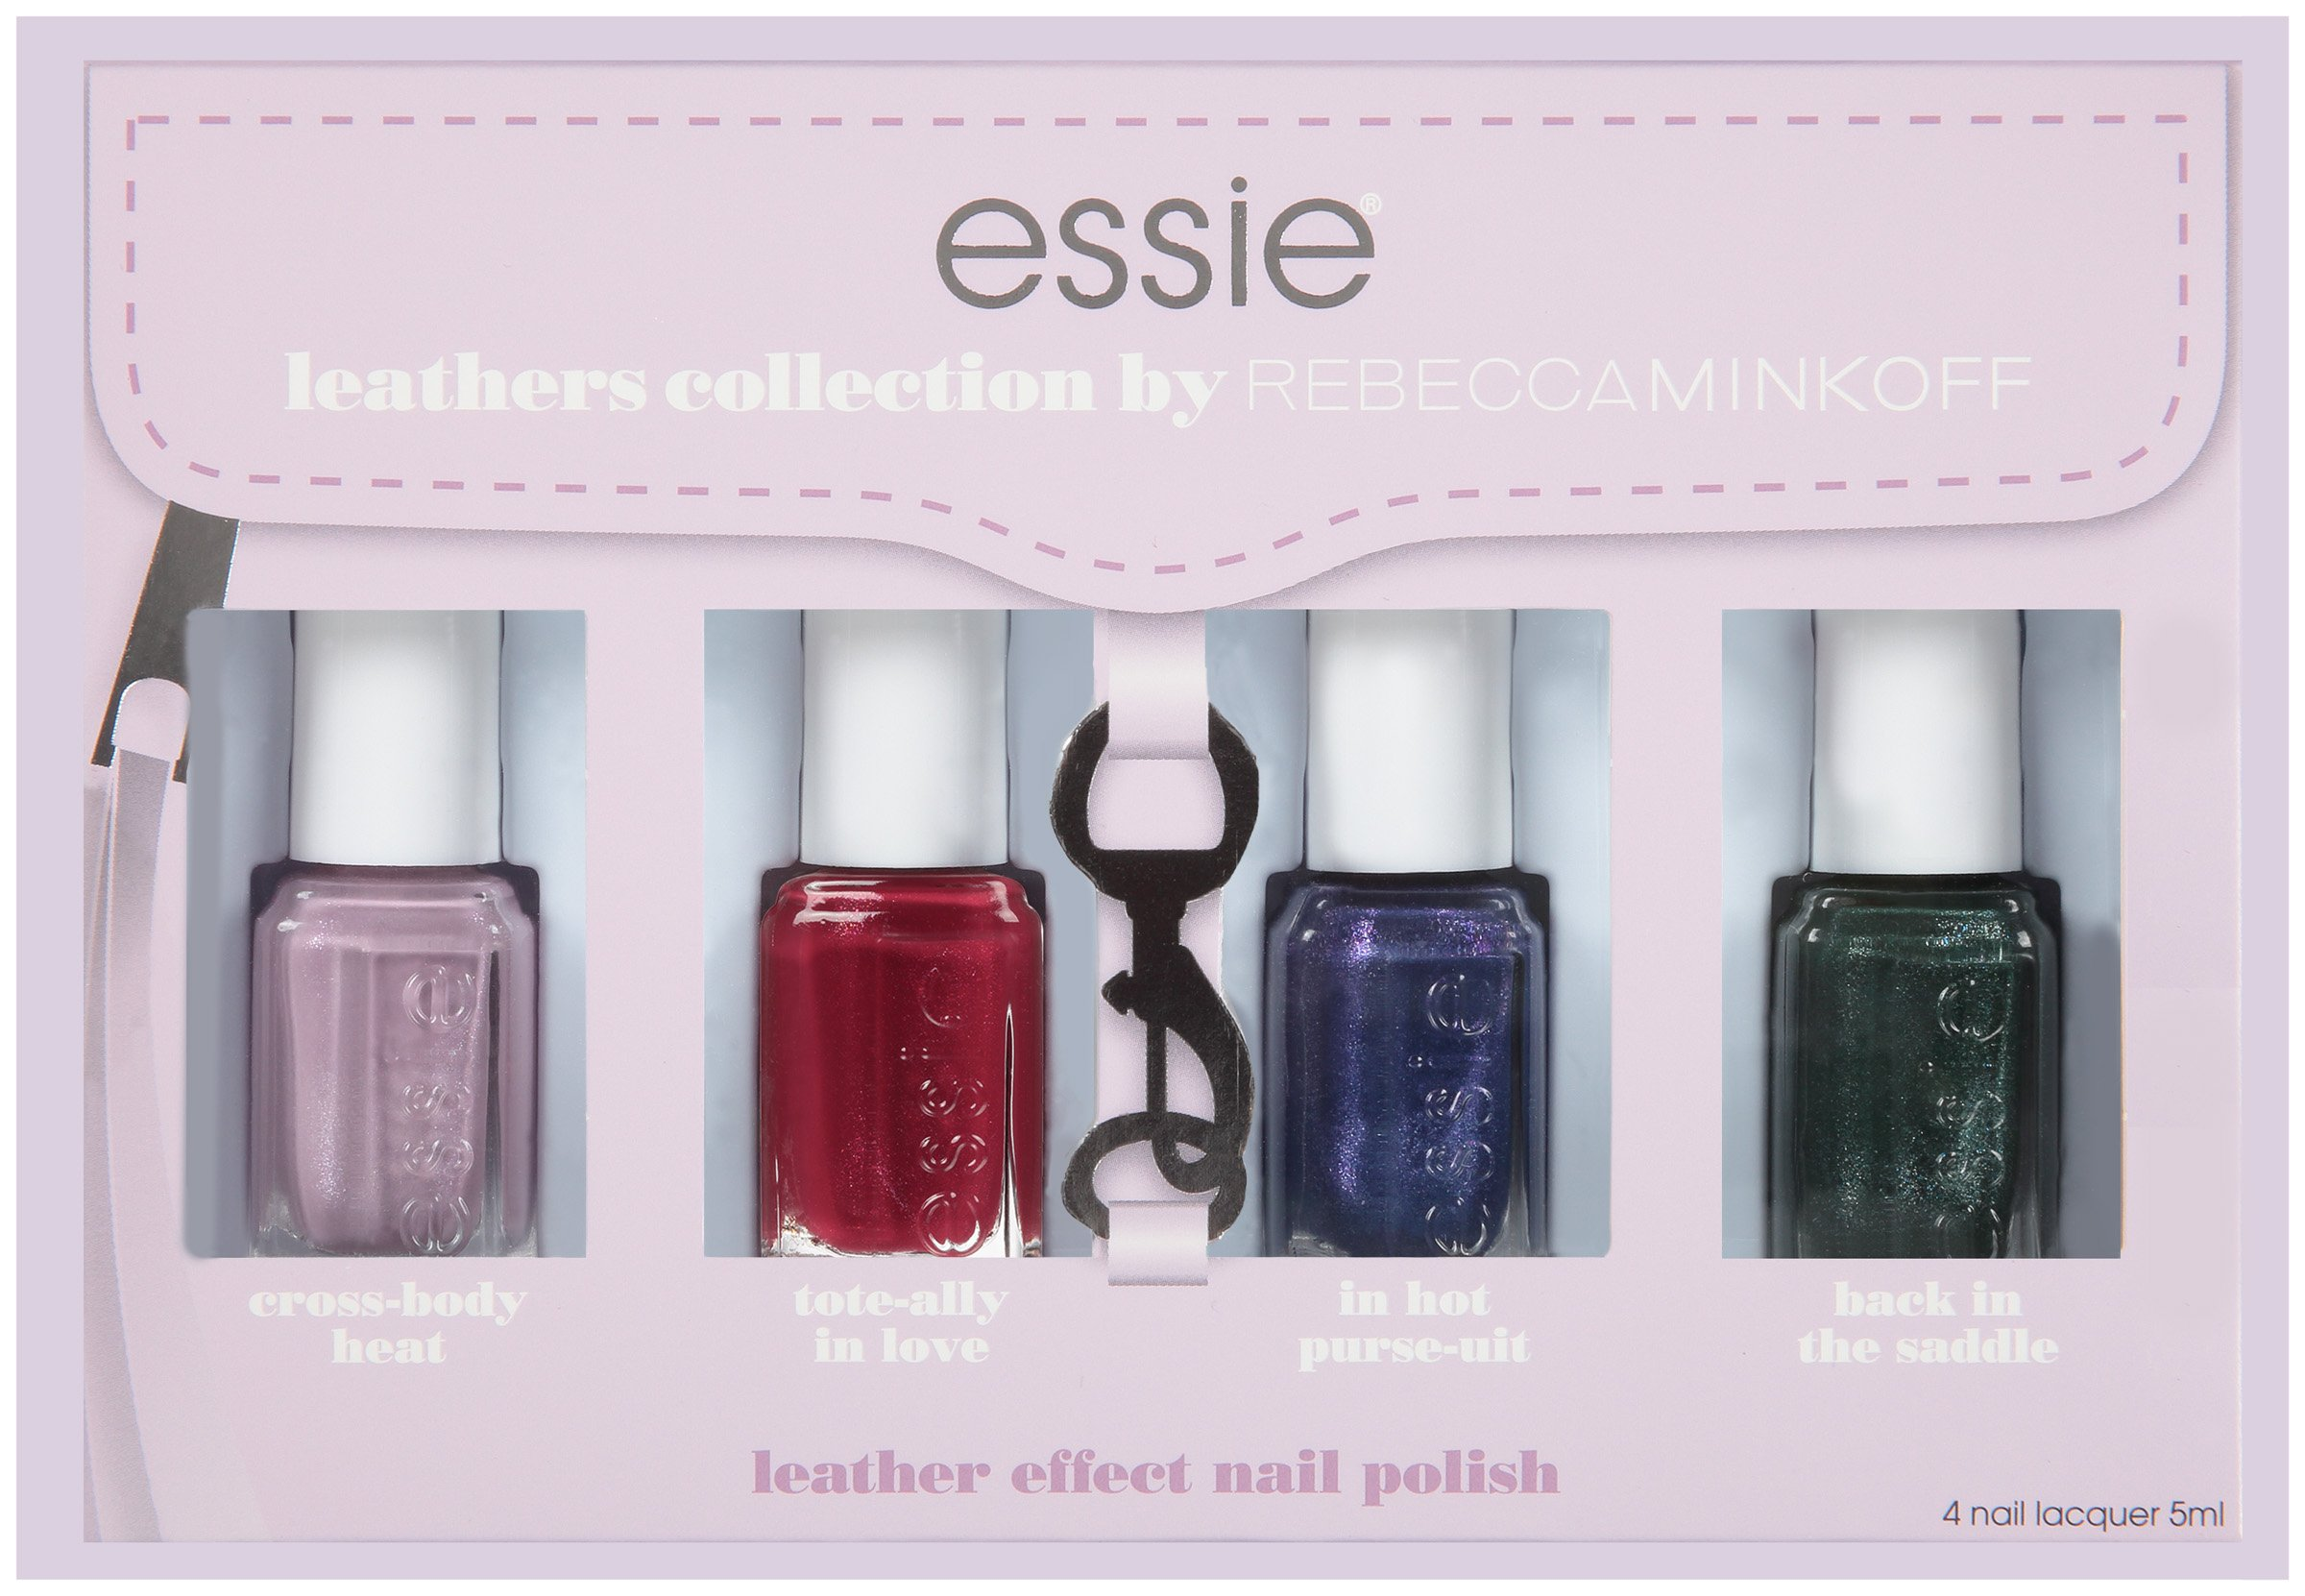 Amazon.com: essie 2017 Celebration Collection Holiday Nail